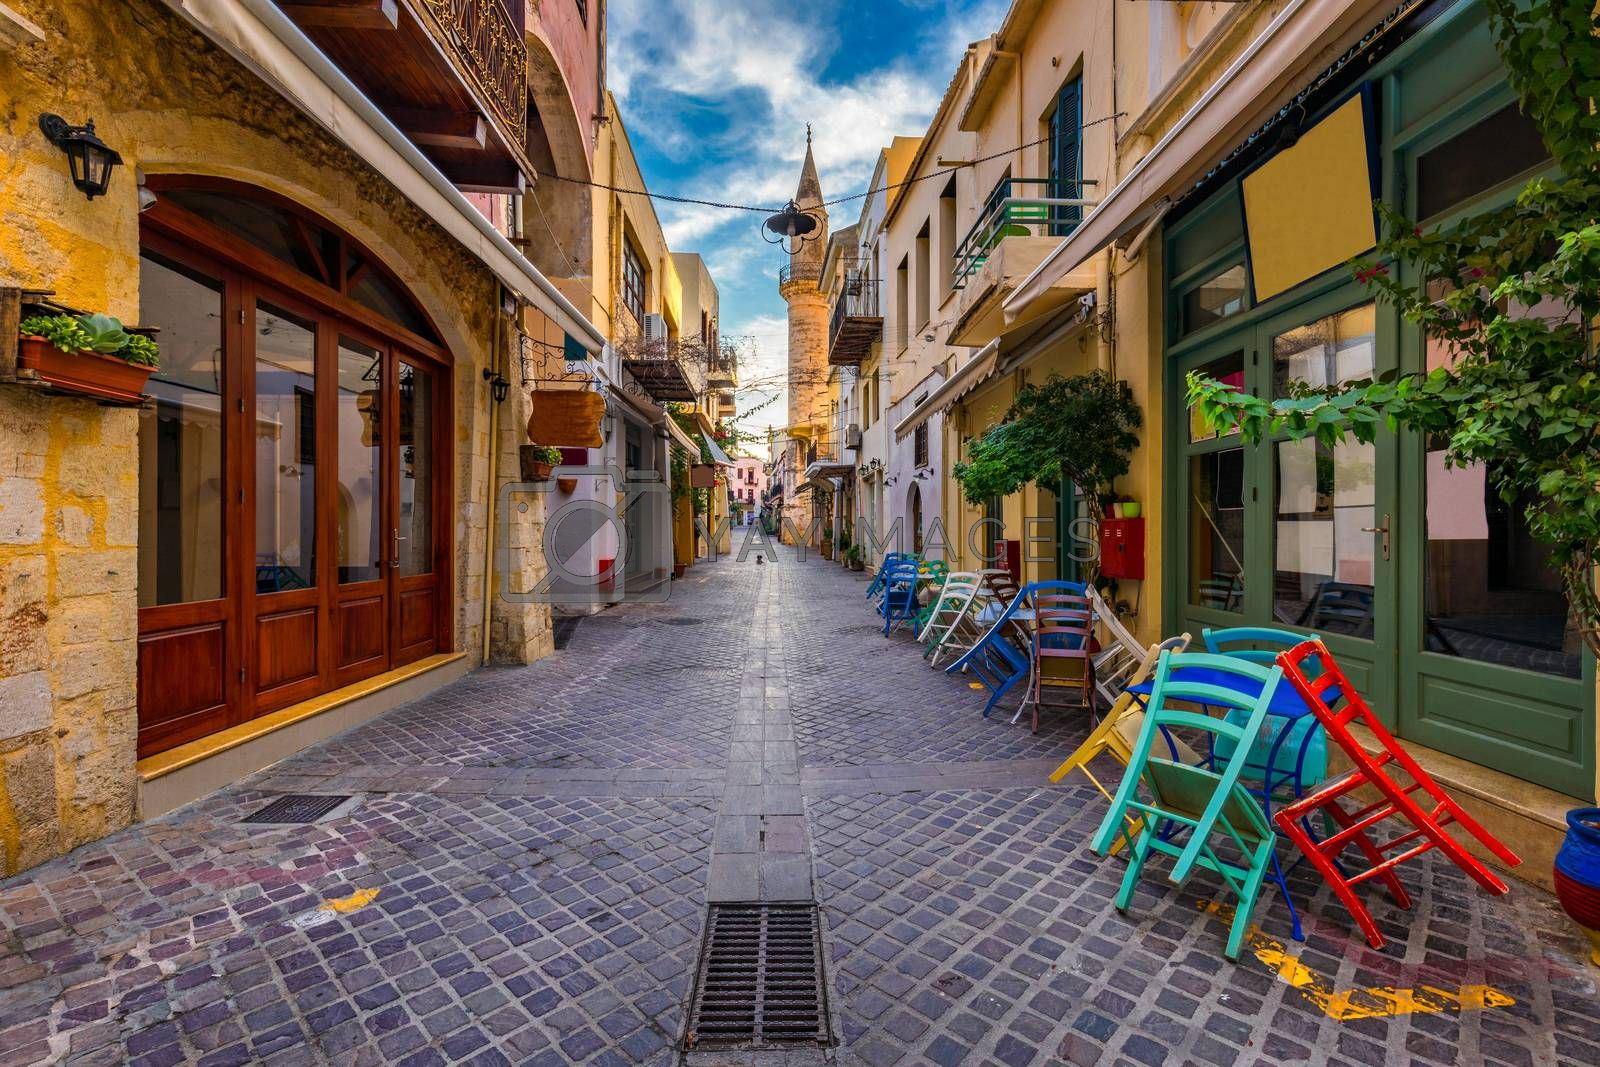 Street in the old town of Chania, Crete, Greece. Charming streets of Greek islands, Crete. Beautiful street in Chania, Crete island, Greece. Summer landscape. Chania old street of Crete island Greece.